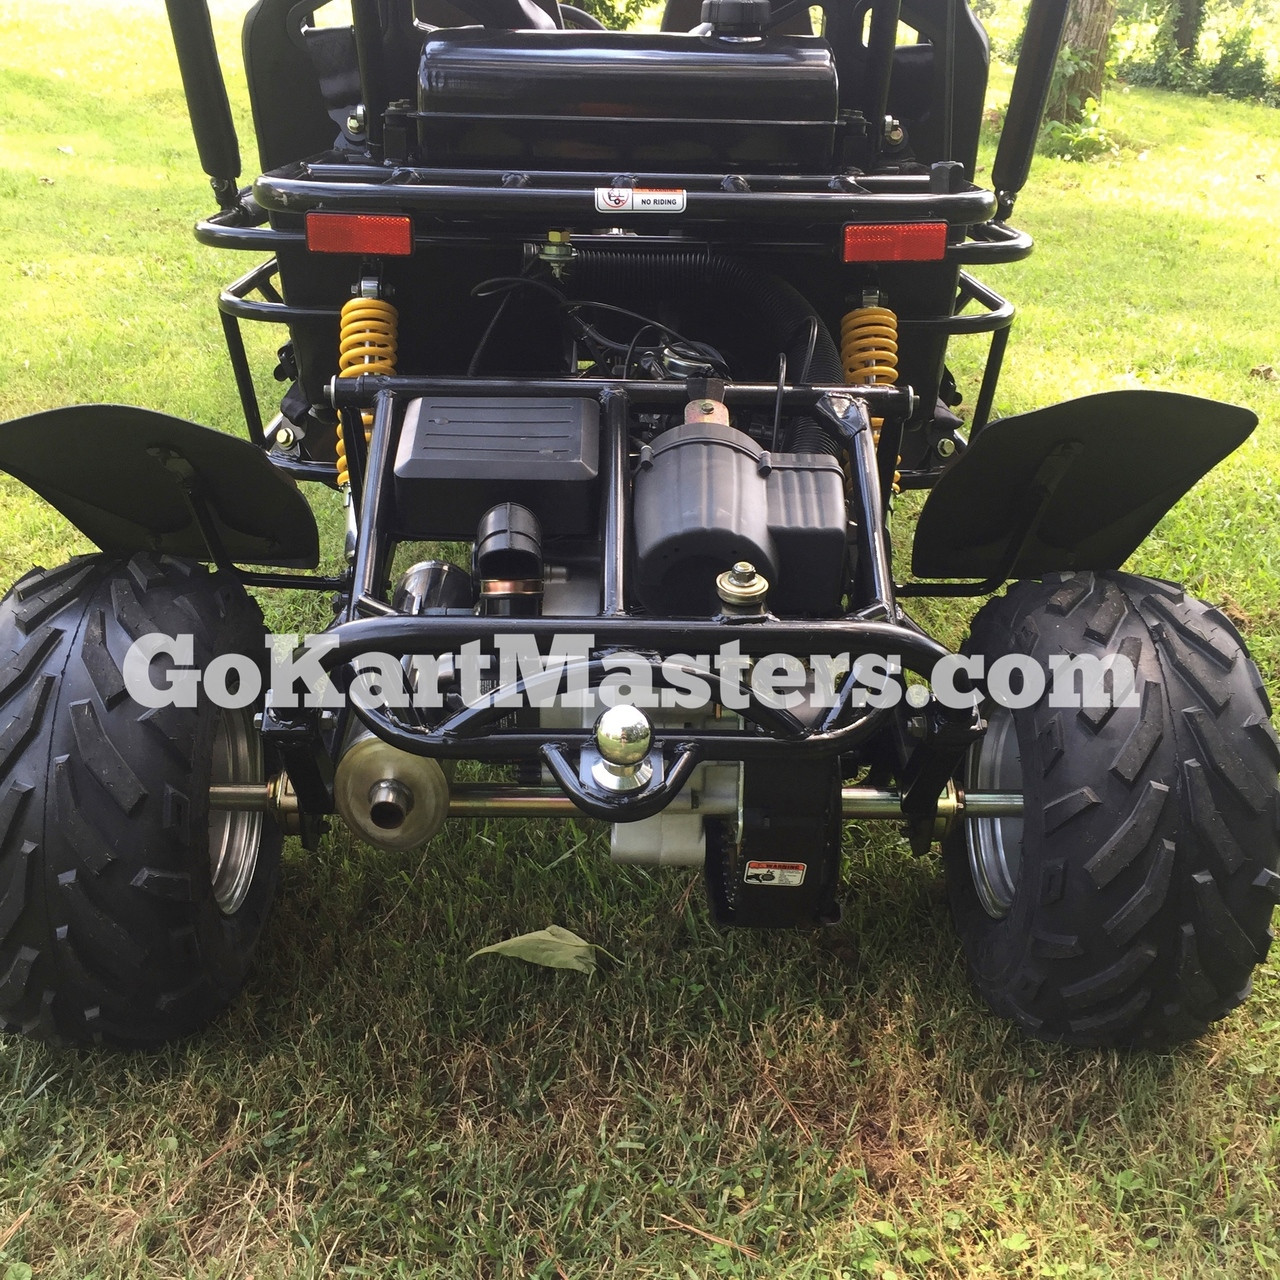 TrailMaster Blazer4 150 Go Kart - Rear of Kart